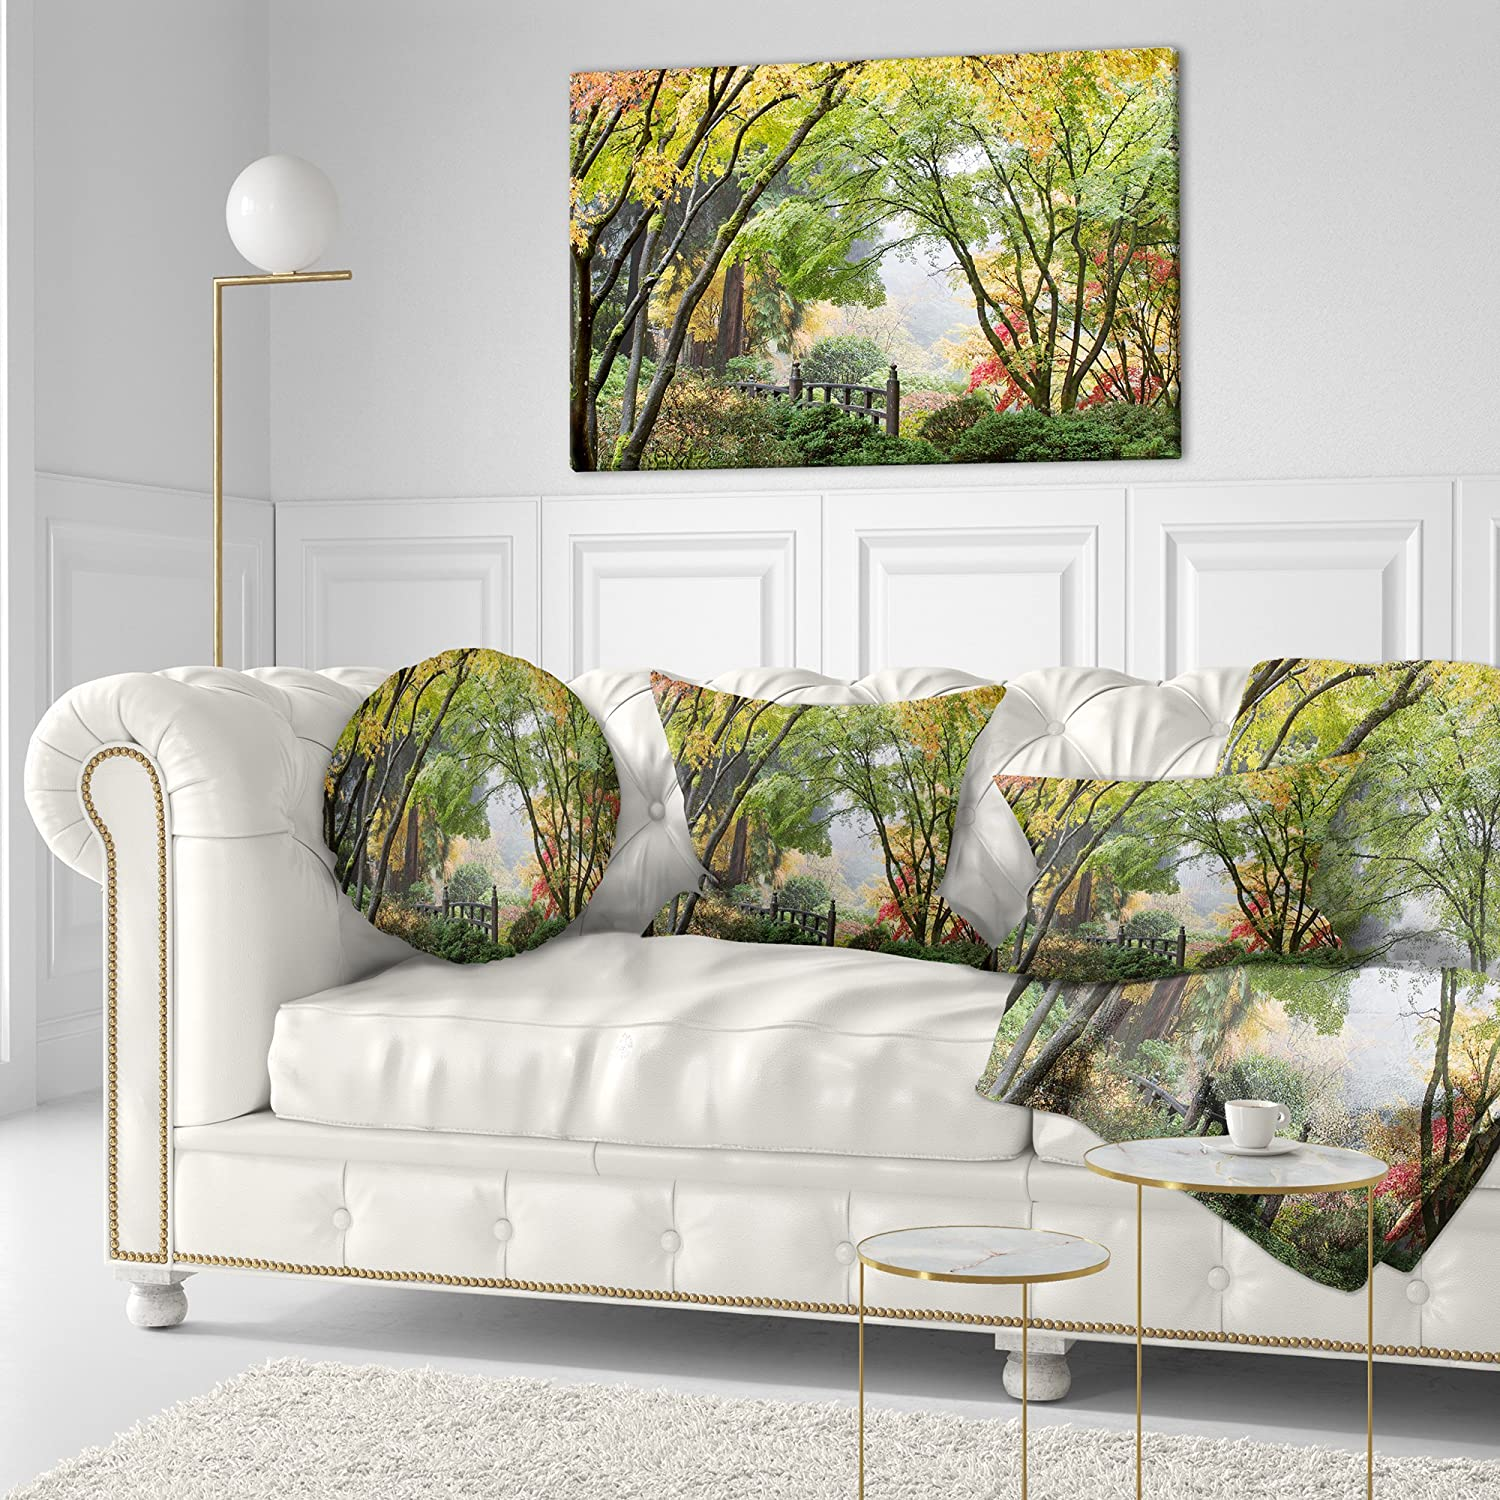 Insert Printed On Both Side Designart CU6495-16-16-C Maple Tree Canopy by Bridge Photography Round Cushion Cover for Living Room Sofa Throw Pillow 16